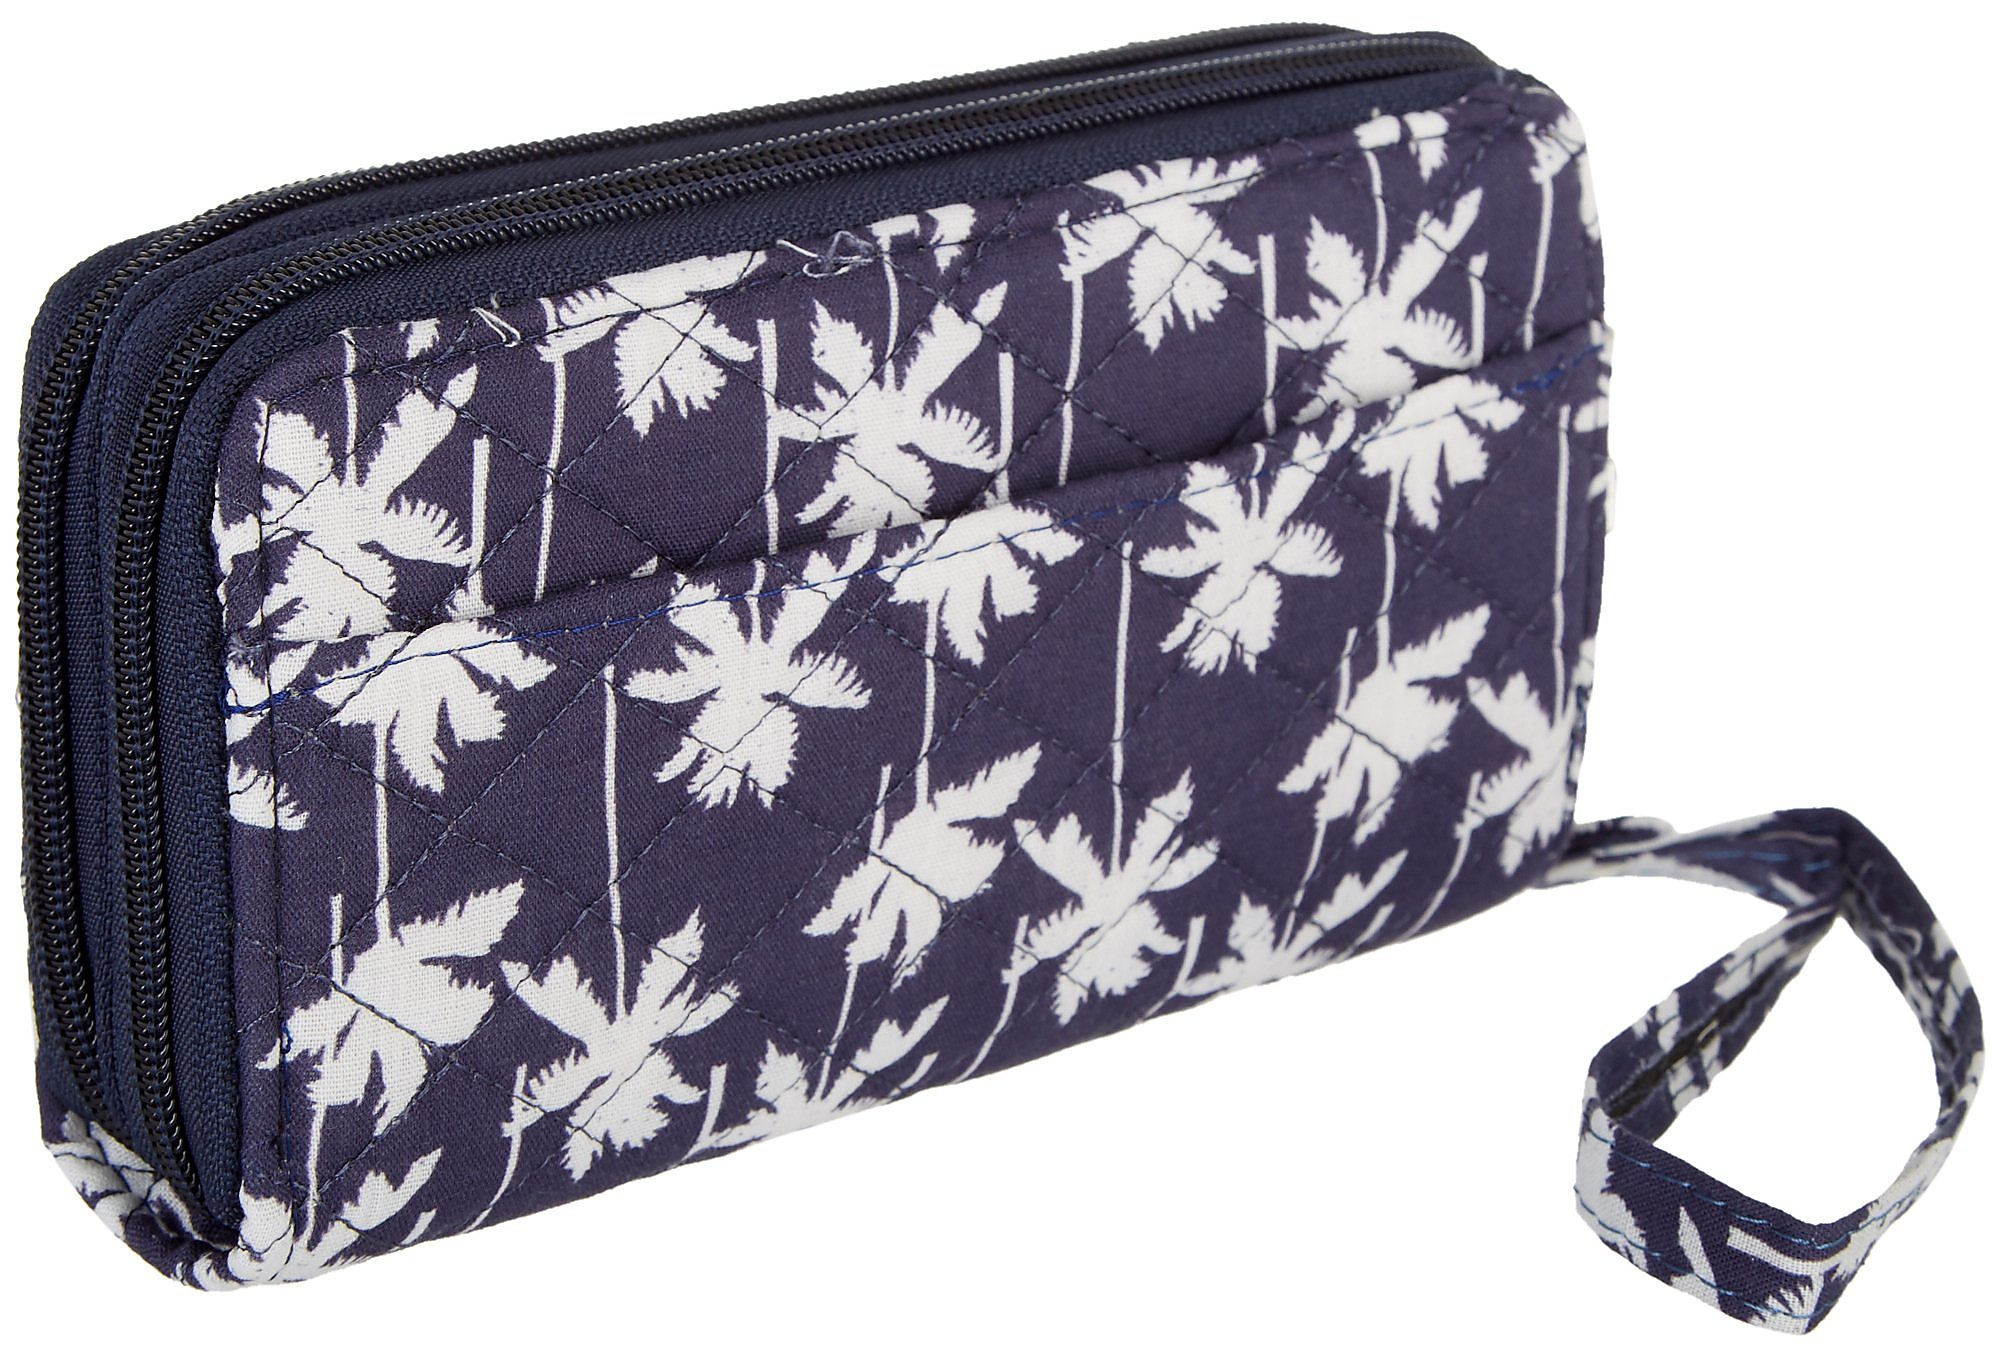 41ff4ac74627 Details about Stone Mountain Palm Tree Double Zip Around Wallet One Size  Navy blue/white